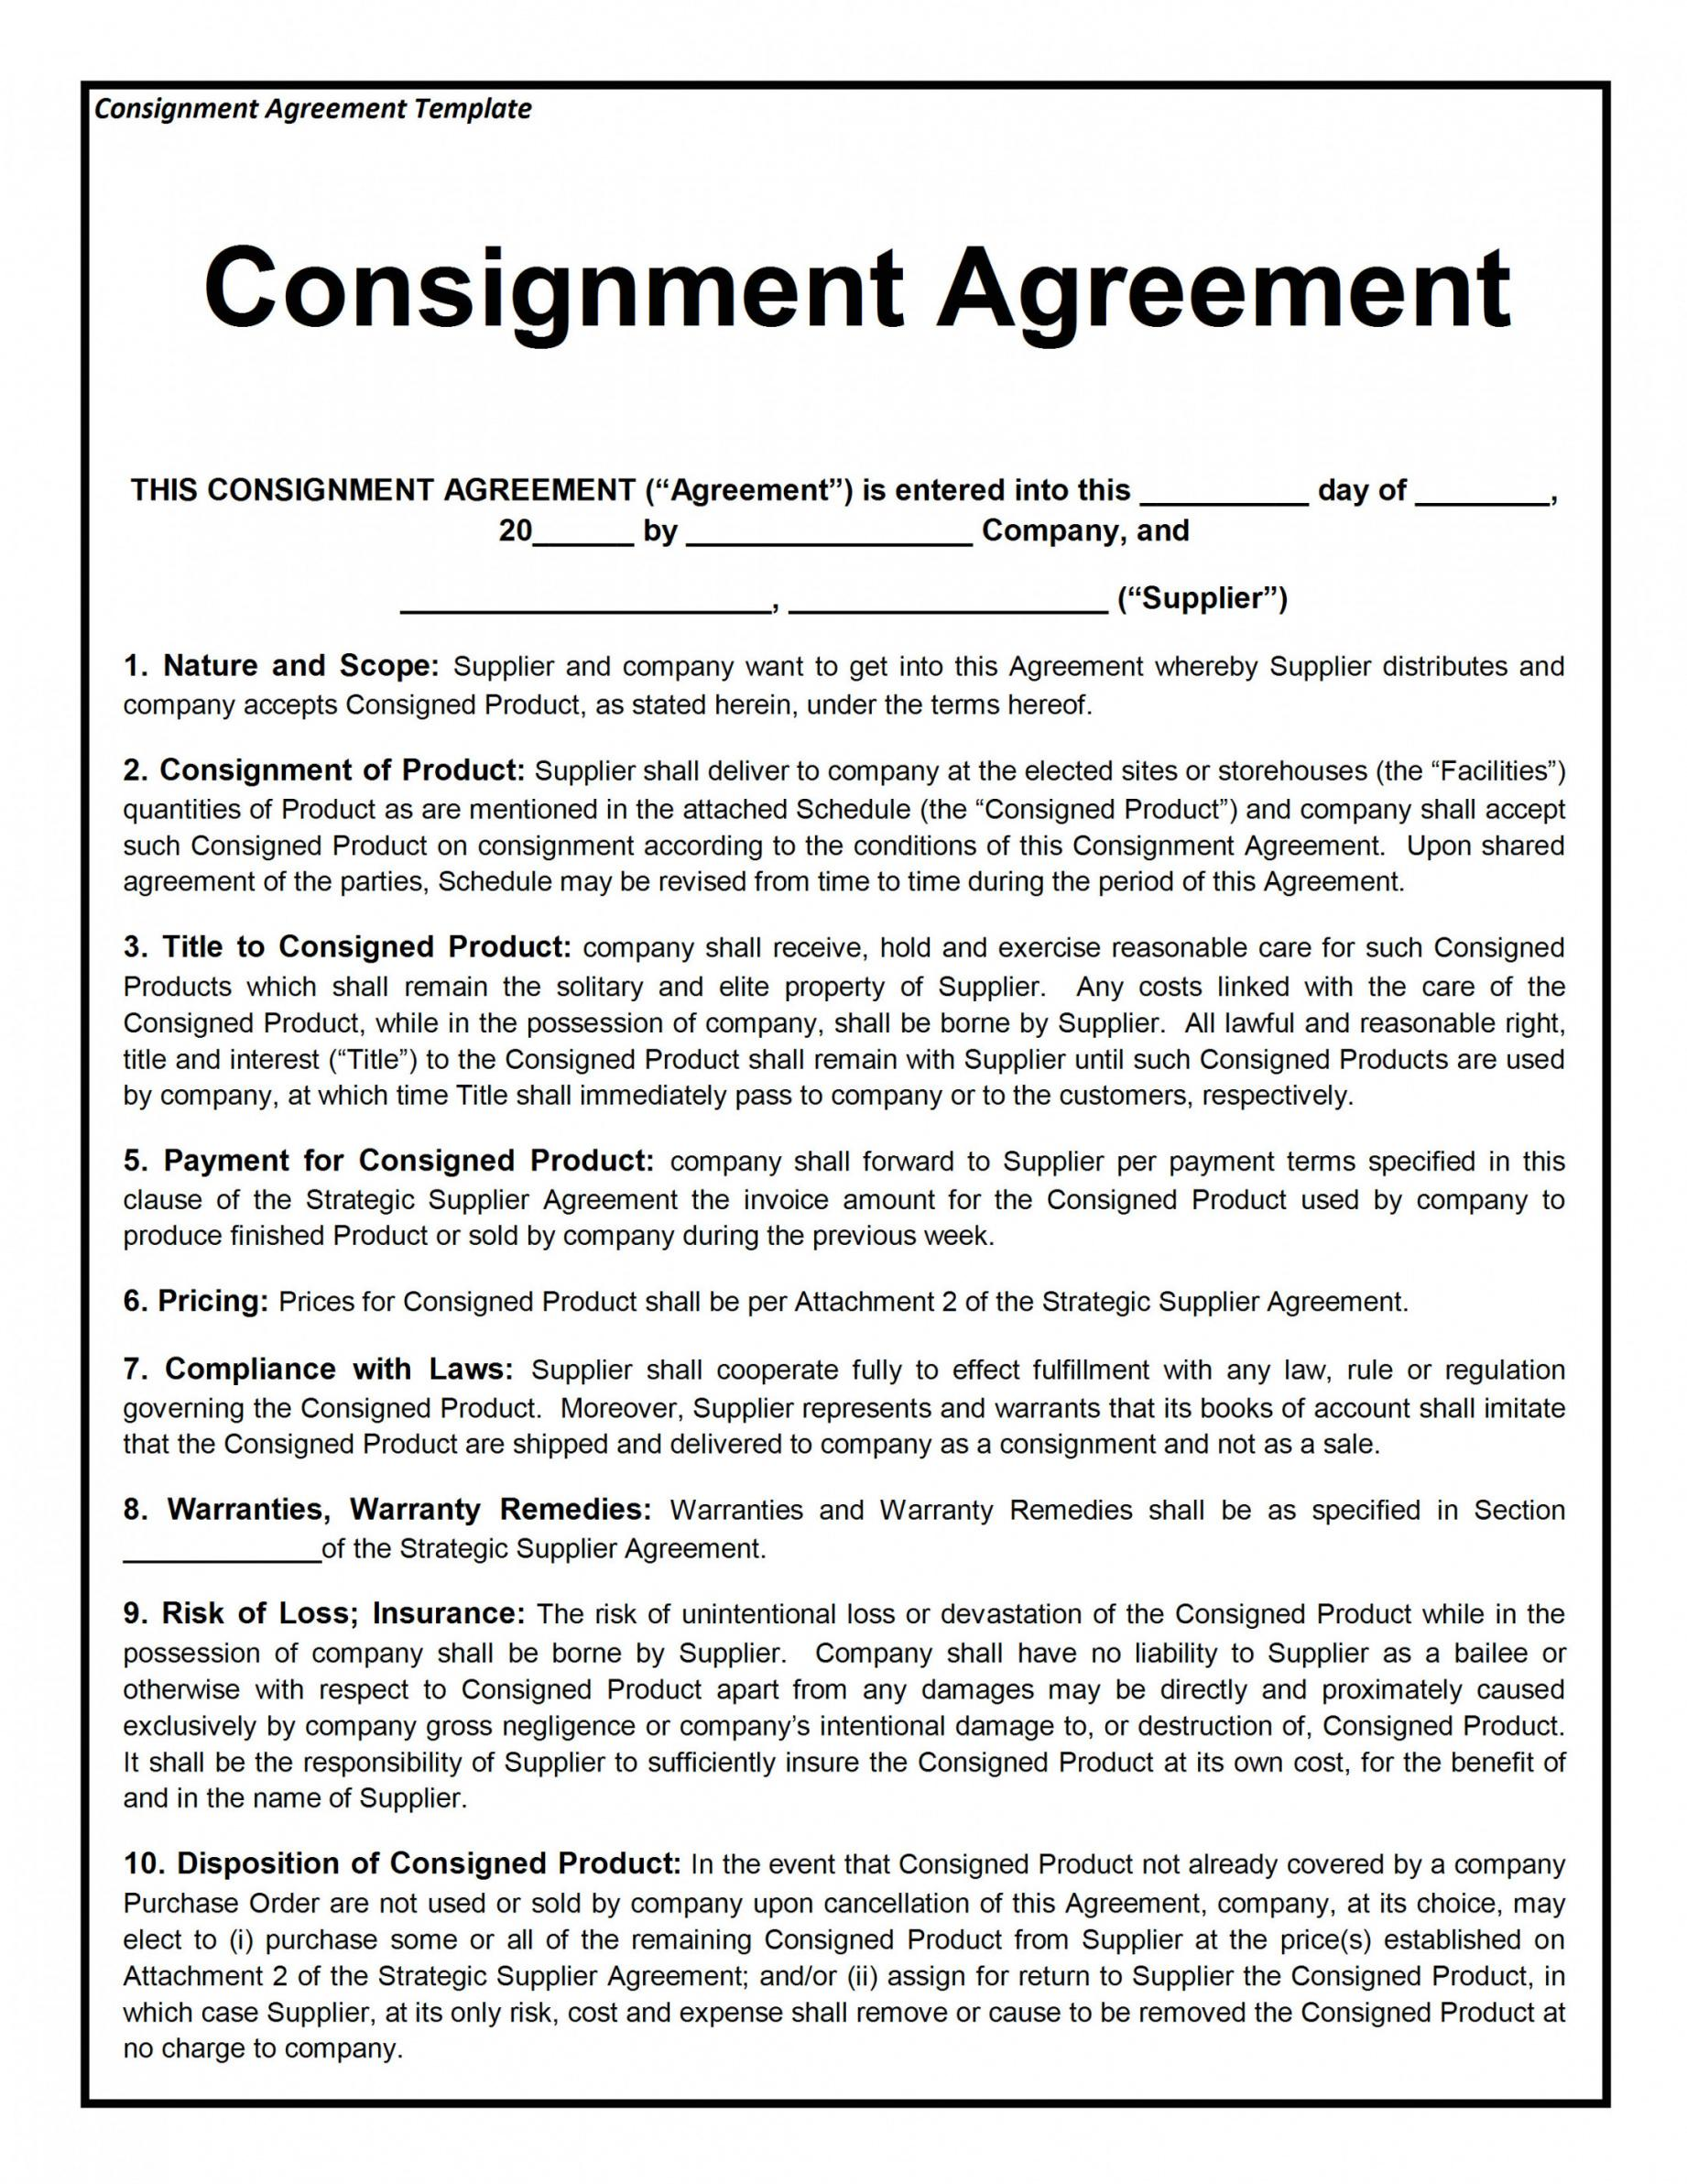 Here The Franchise License Agreement Template